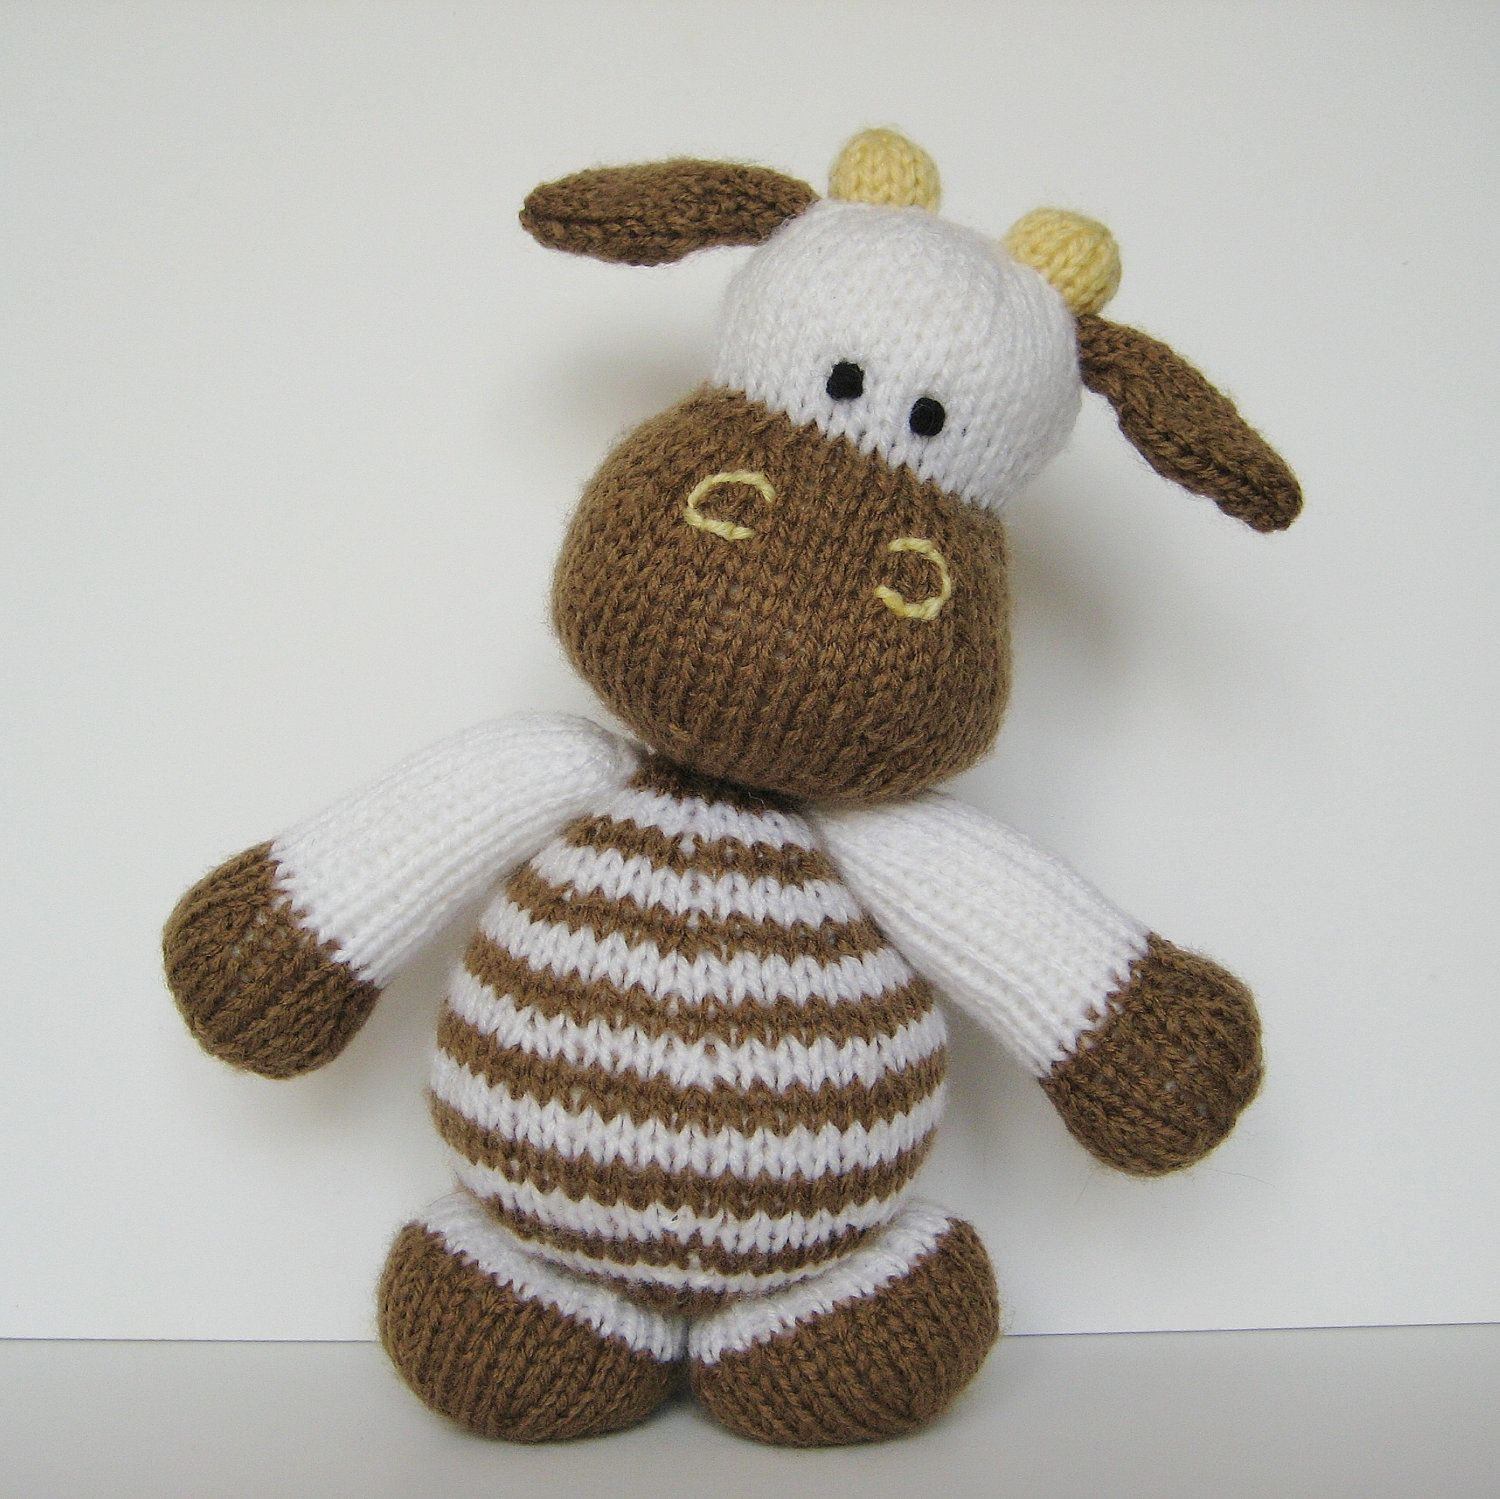 Animal Knitting Patterns Free : Milkshake the Cow toy knitting pattern - knitted farm ...